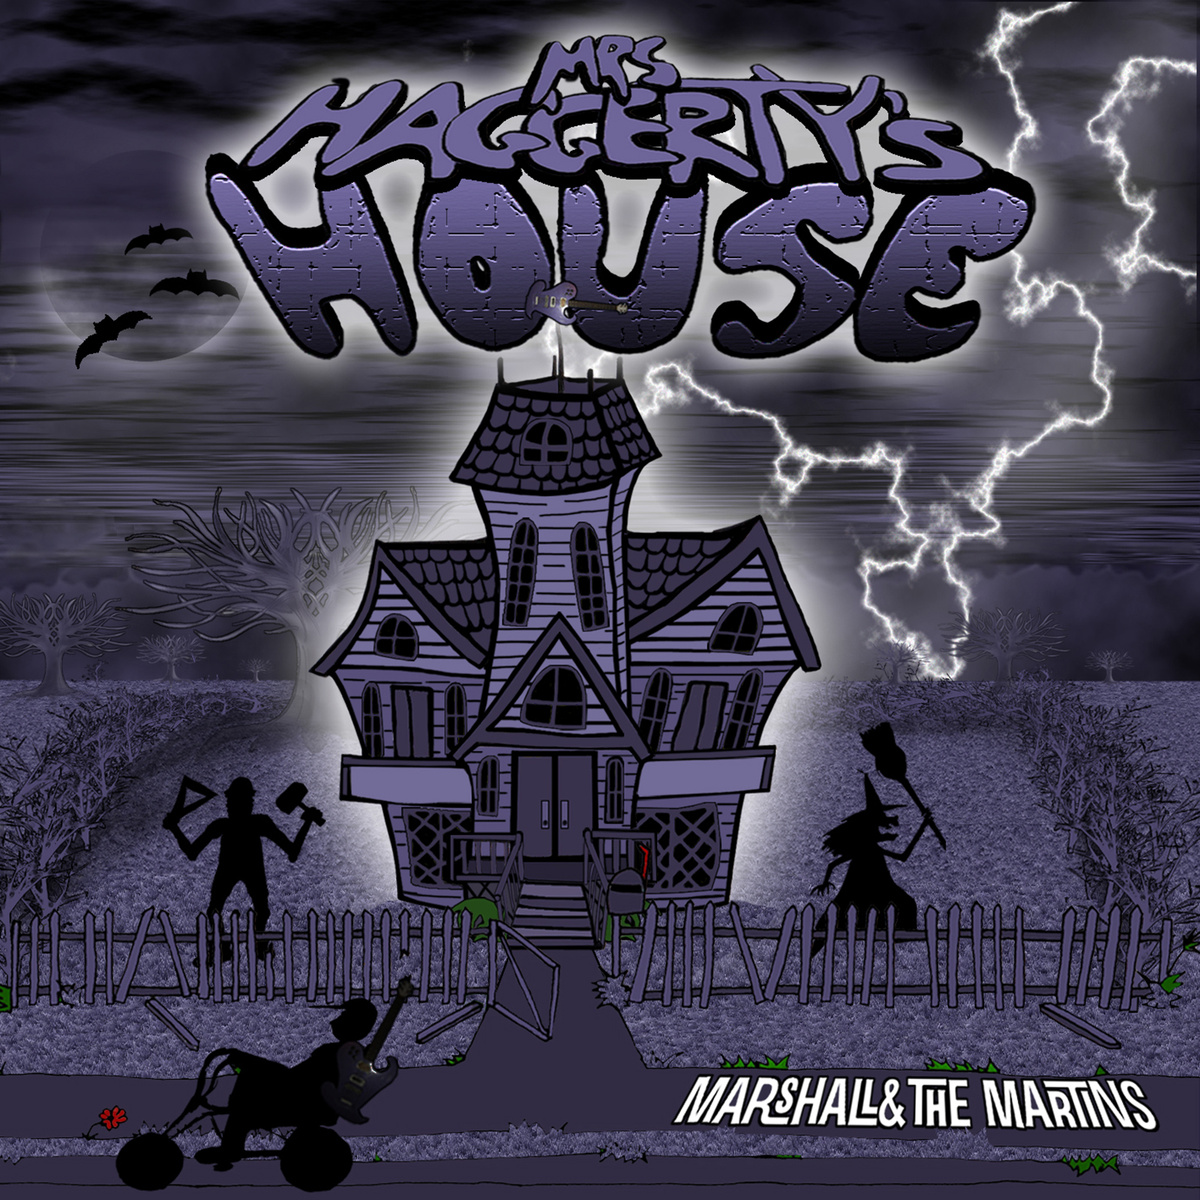 Marshall and the Martins - Mrs. Haggerty's House